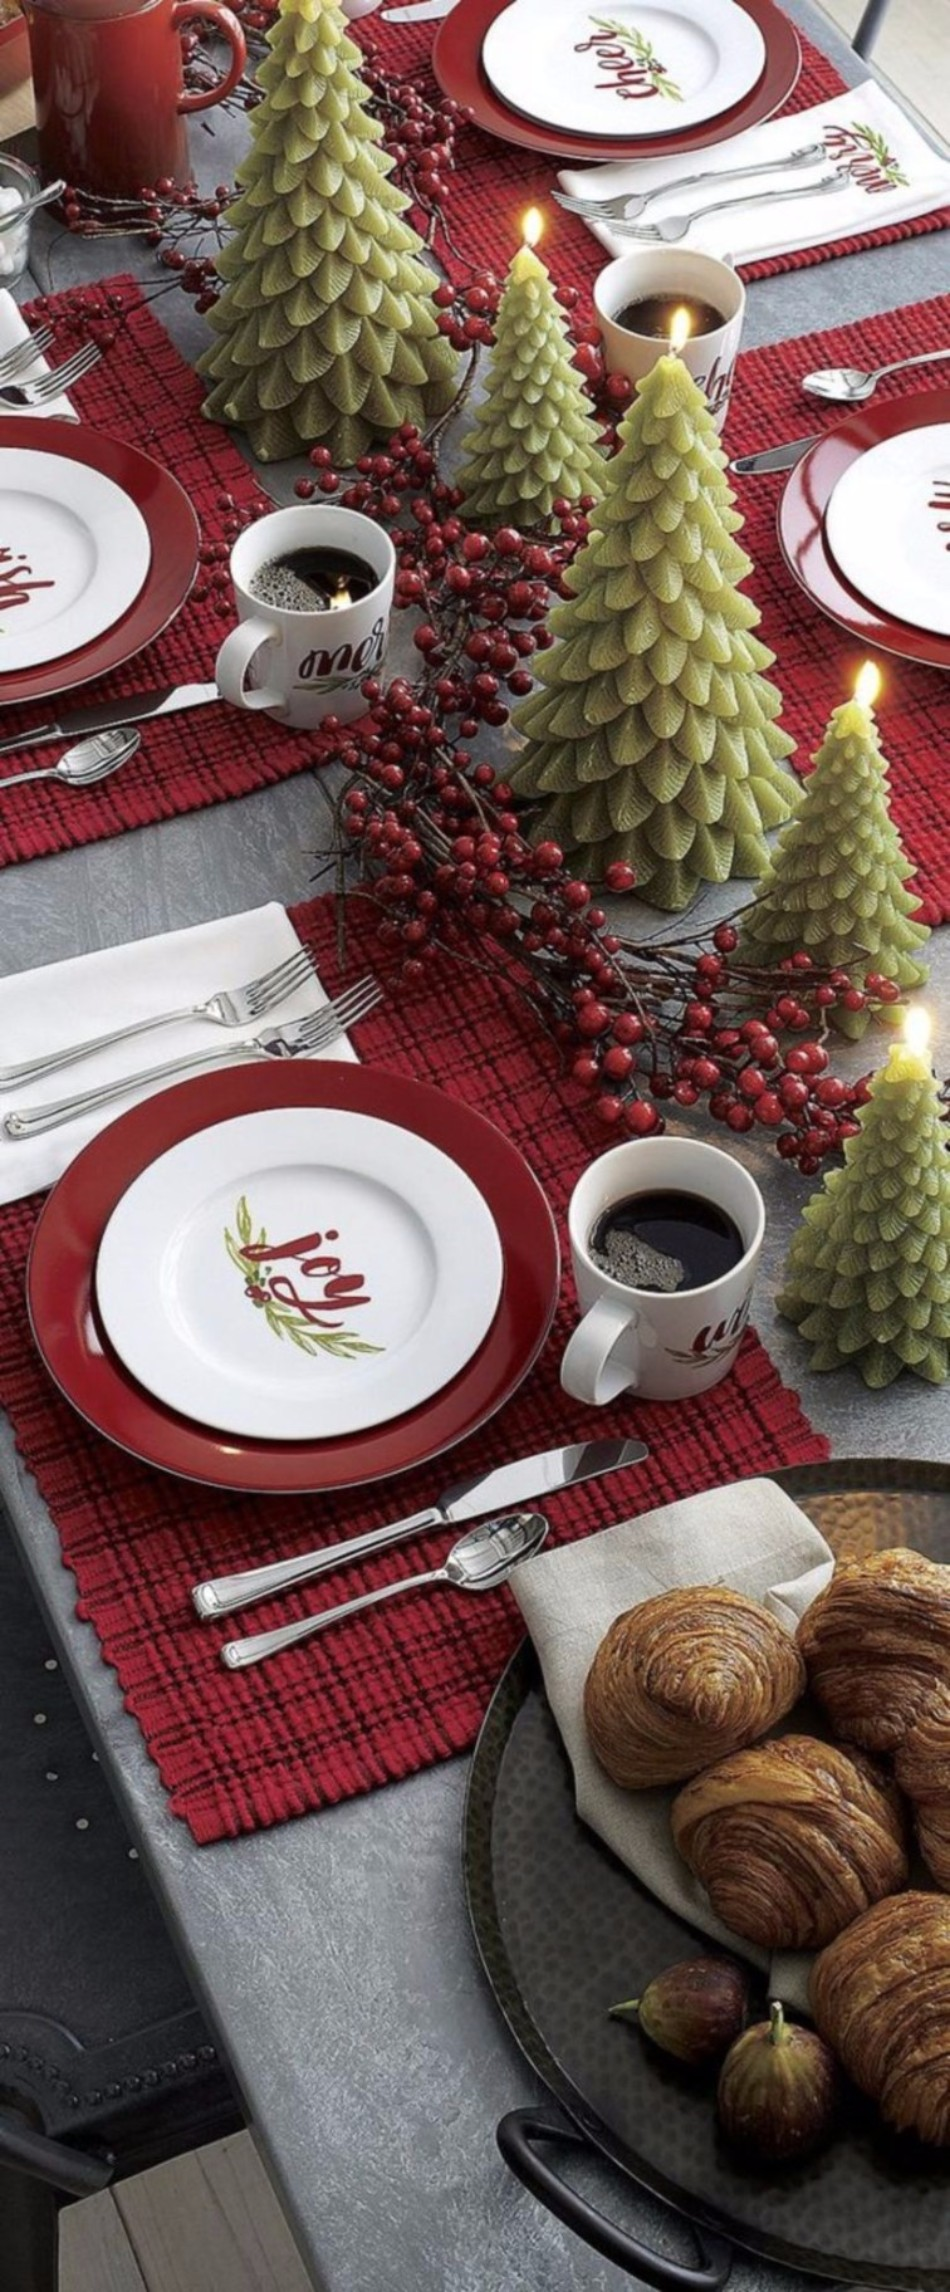 5 Ideas on How to Prepare The Best Dining Table Decor for Christmas | www.bocadolobo.com #moderndiningtables #diningroom #thediningroom #diningtable #christmas #christmasdecor #tableware #tabledecor @moderndiningtables dining table decor 5 Ideas on How to Prepare The Best Dining Table Decor for Christmas 5 Ideas on How to Prepare The Best Dining Table Decor for Christmas 11